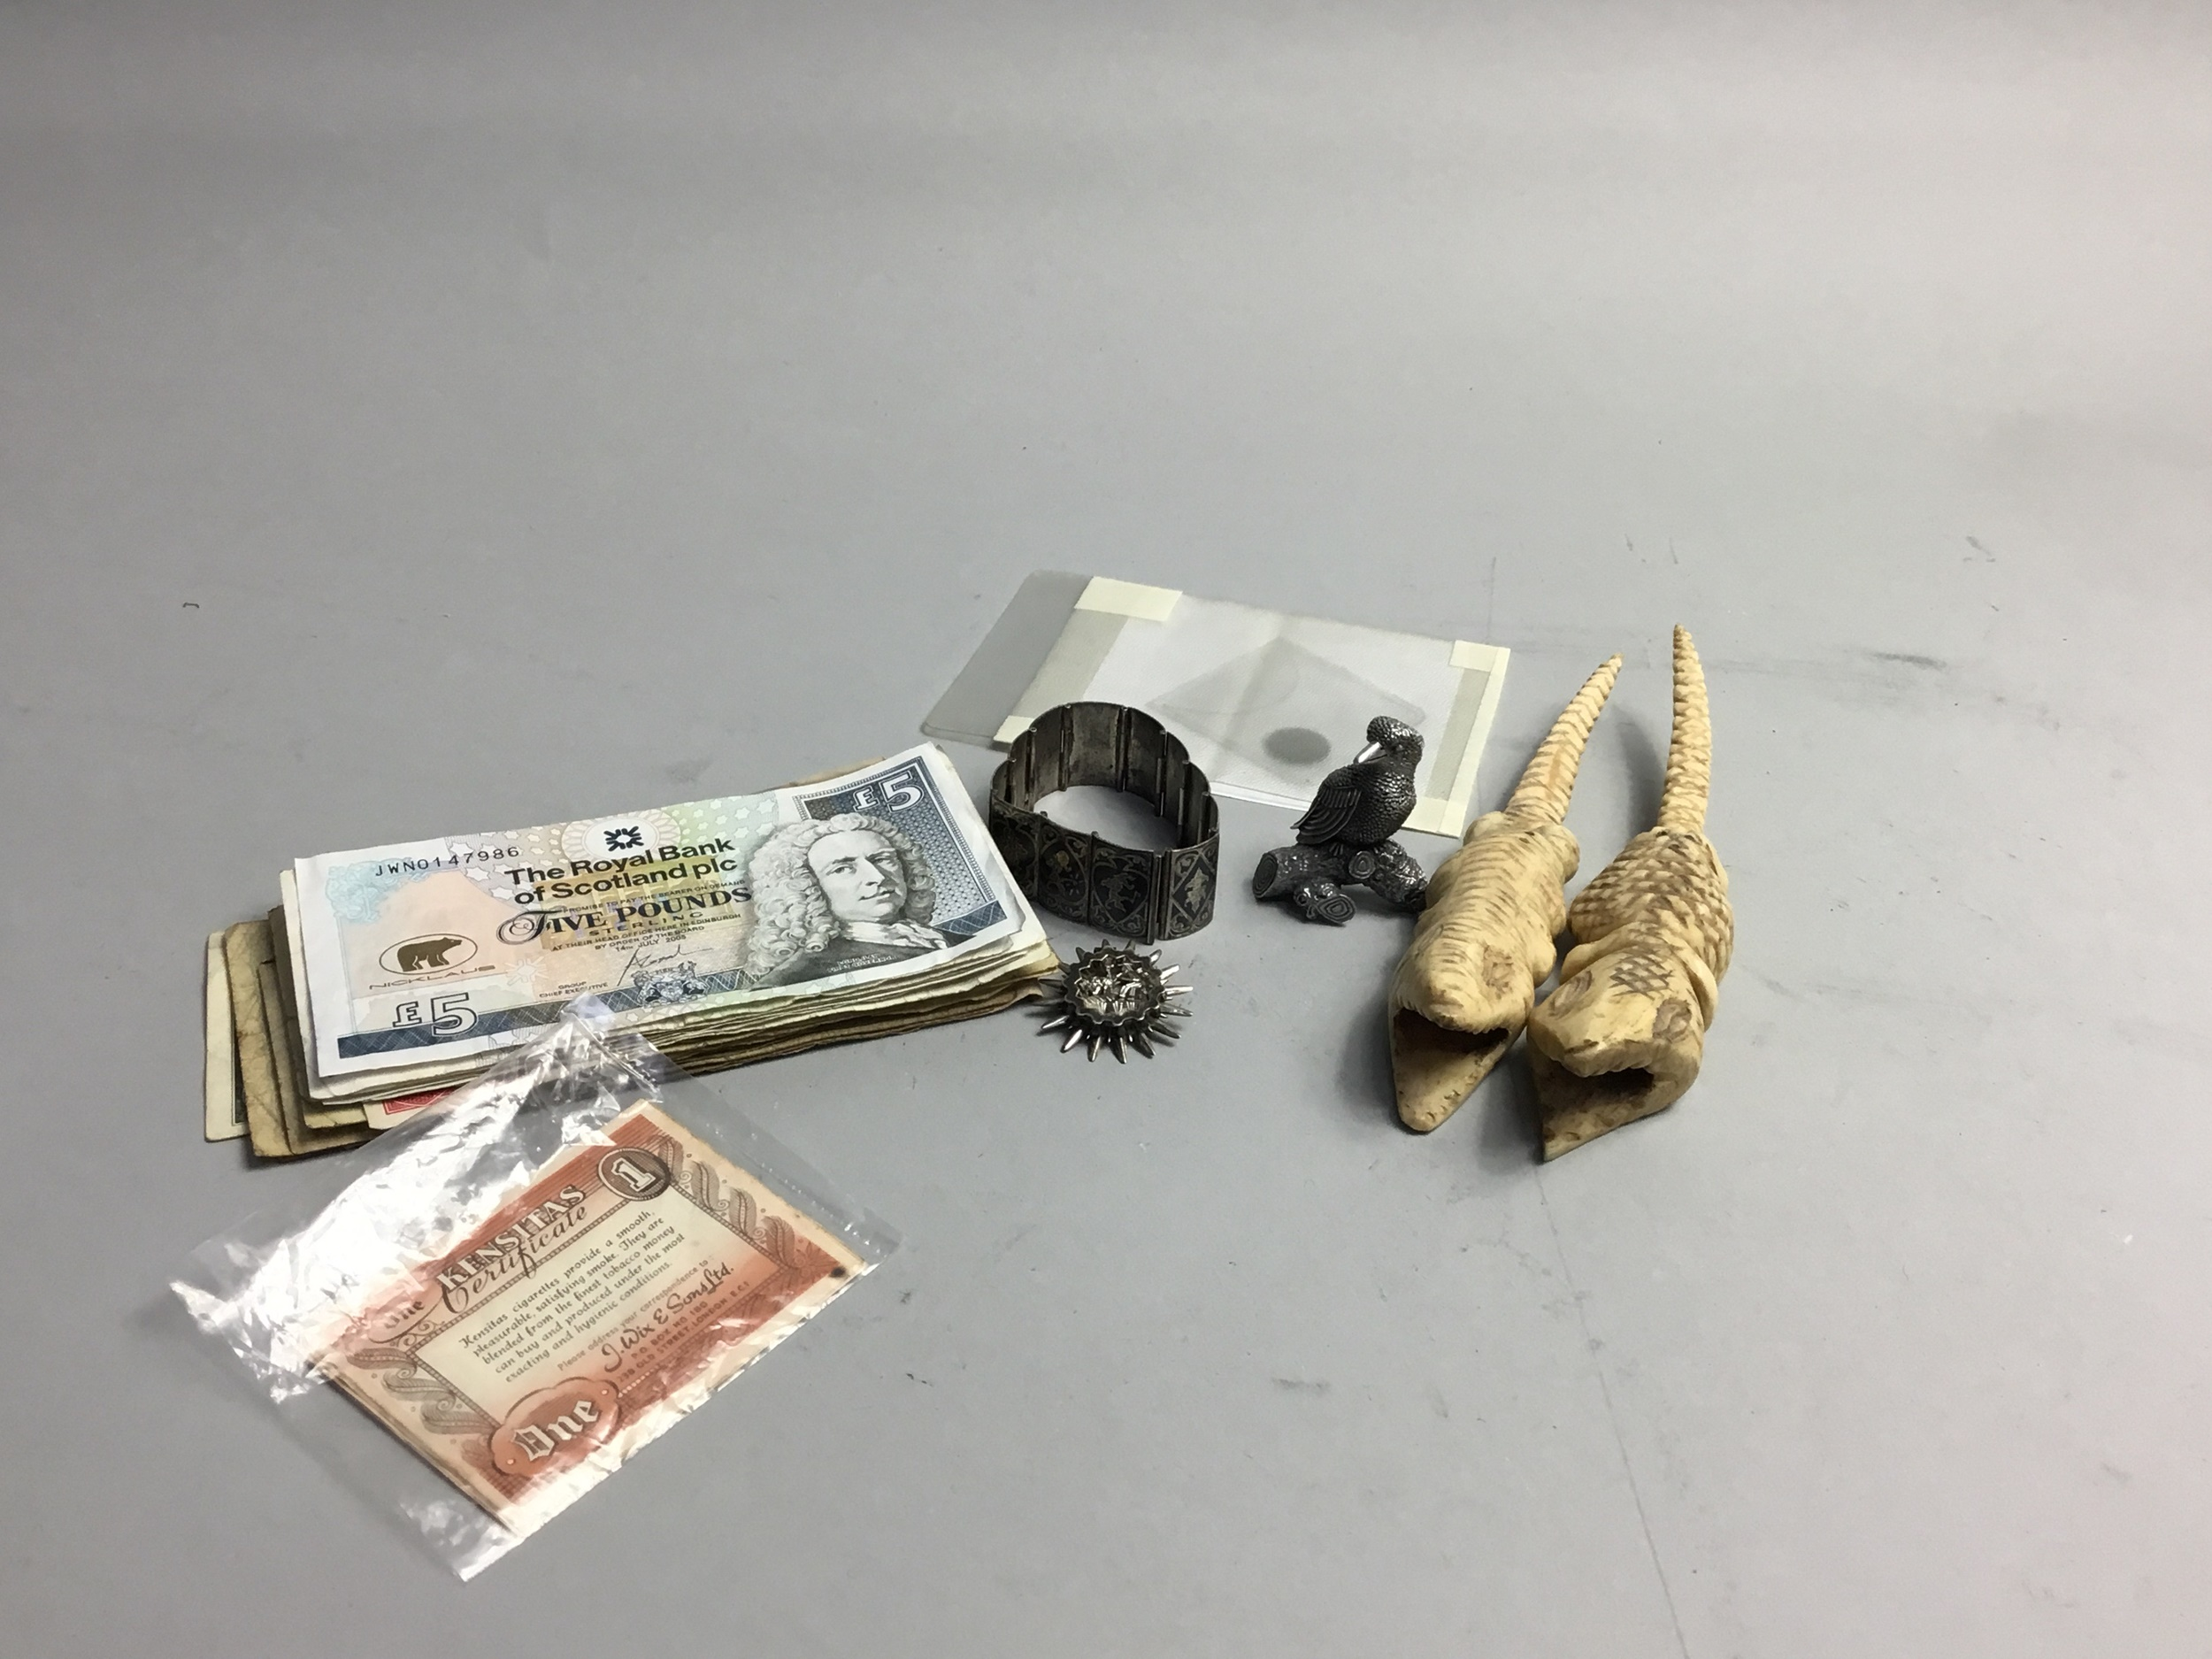 A LOT OF TWO CARVED BONE CROCODILES, BANKNOTES, BRACELET AND OTHER ITEMS